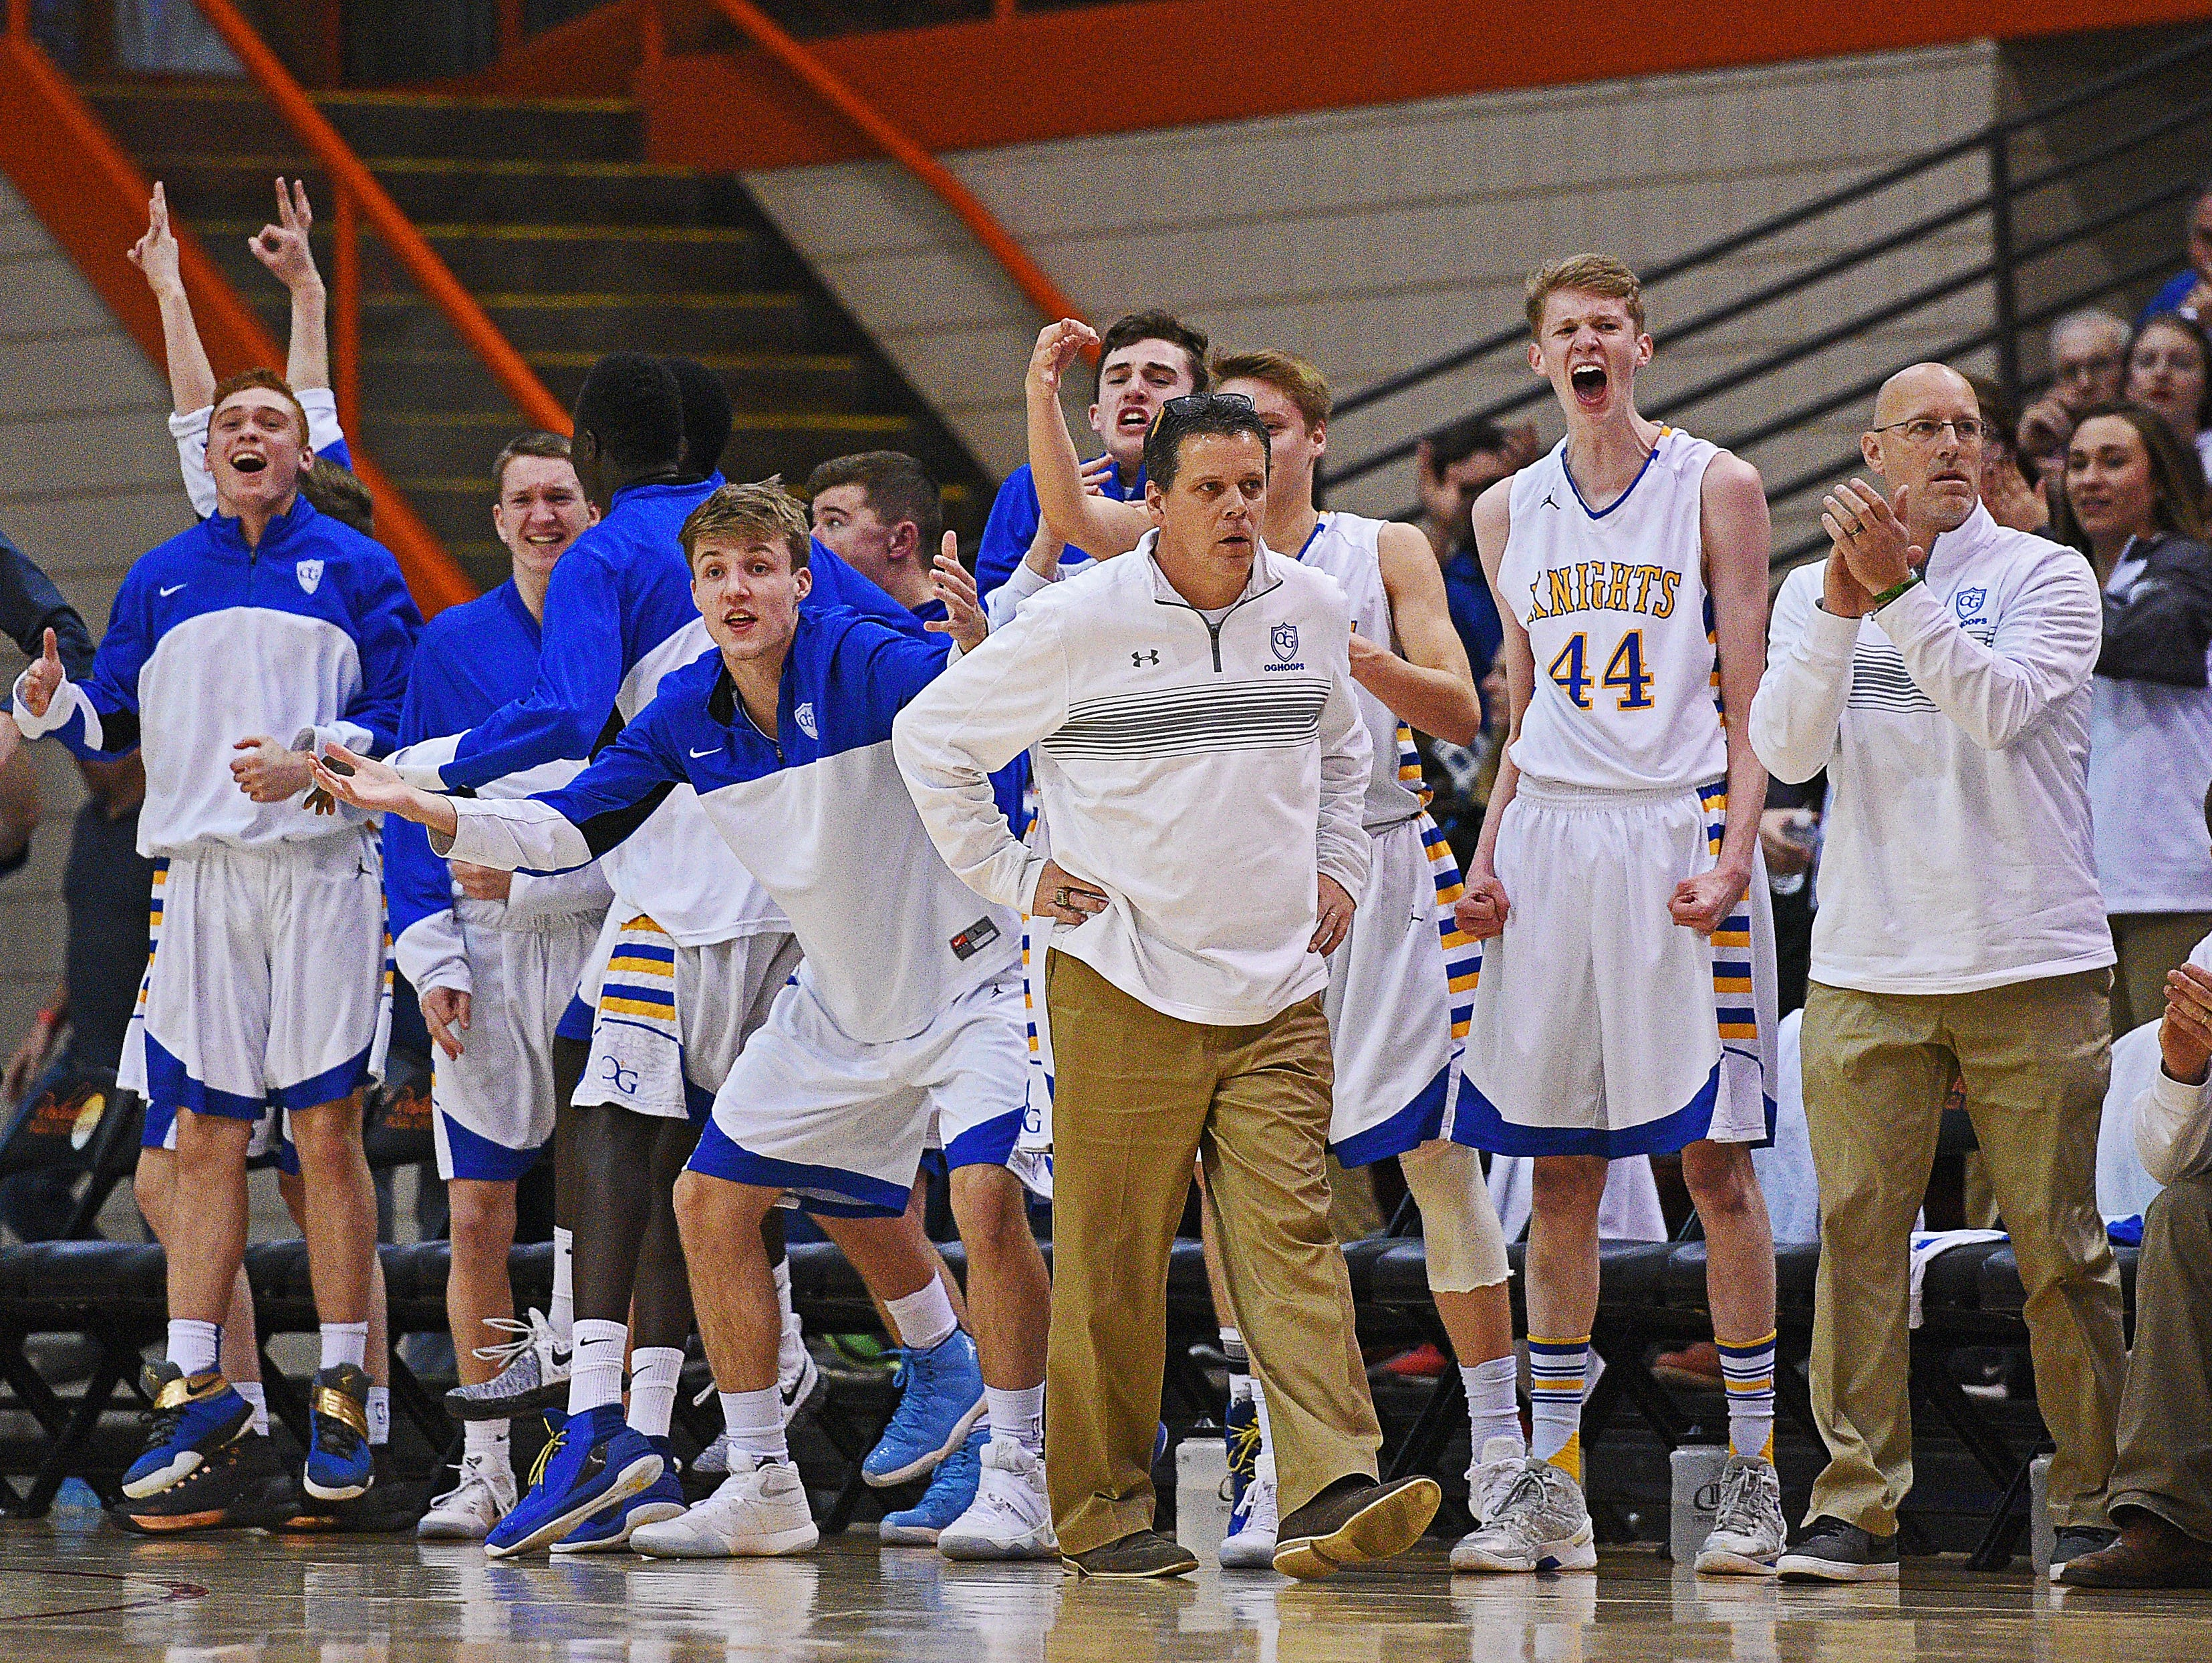 O'Gorman players react from the bench after a teammate scored during the 2017 SDHSAA Class AA State Boys Basketball championship game against Aberdeen Central Saturday, March 18, 2017, at Rushmore Plaza Civic Center in Rapid City.